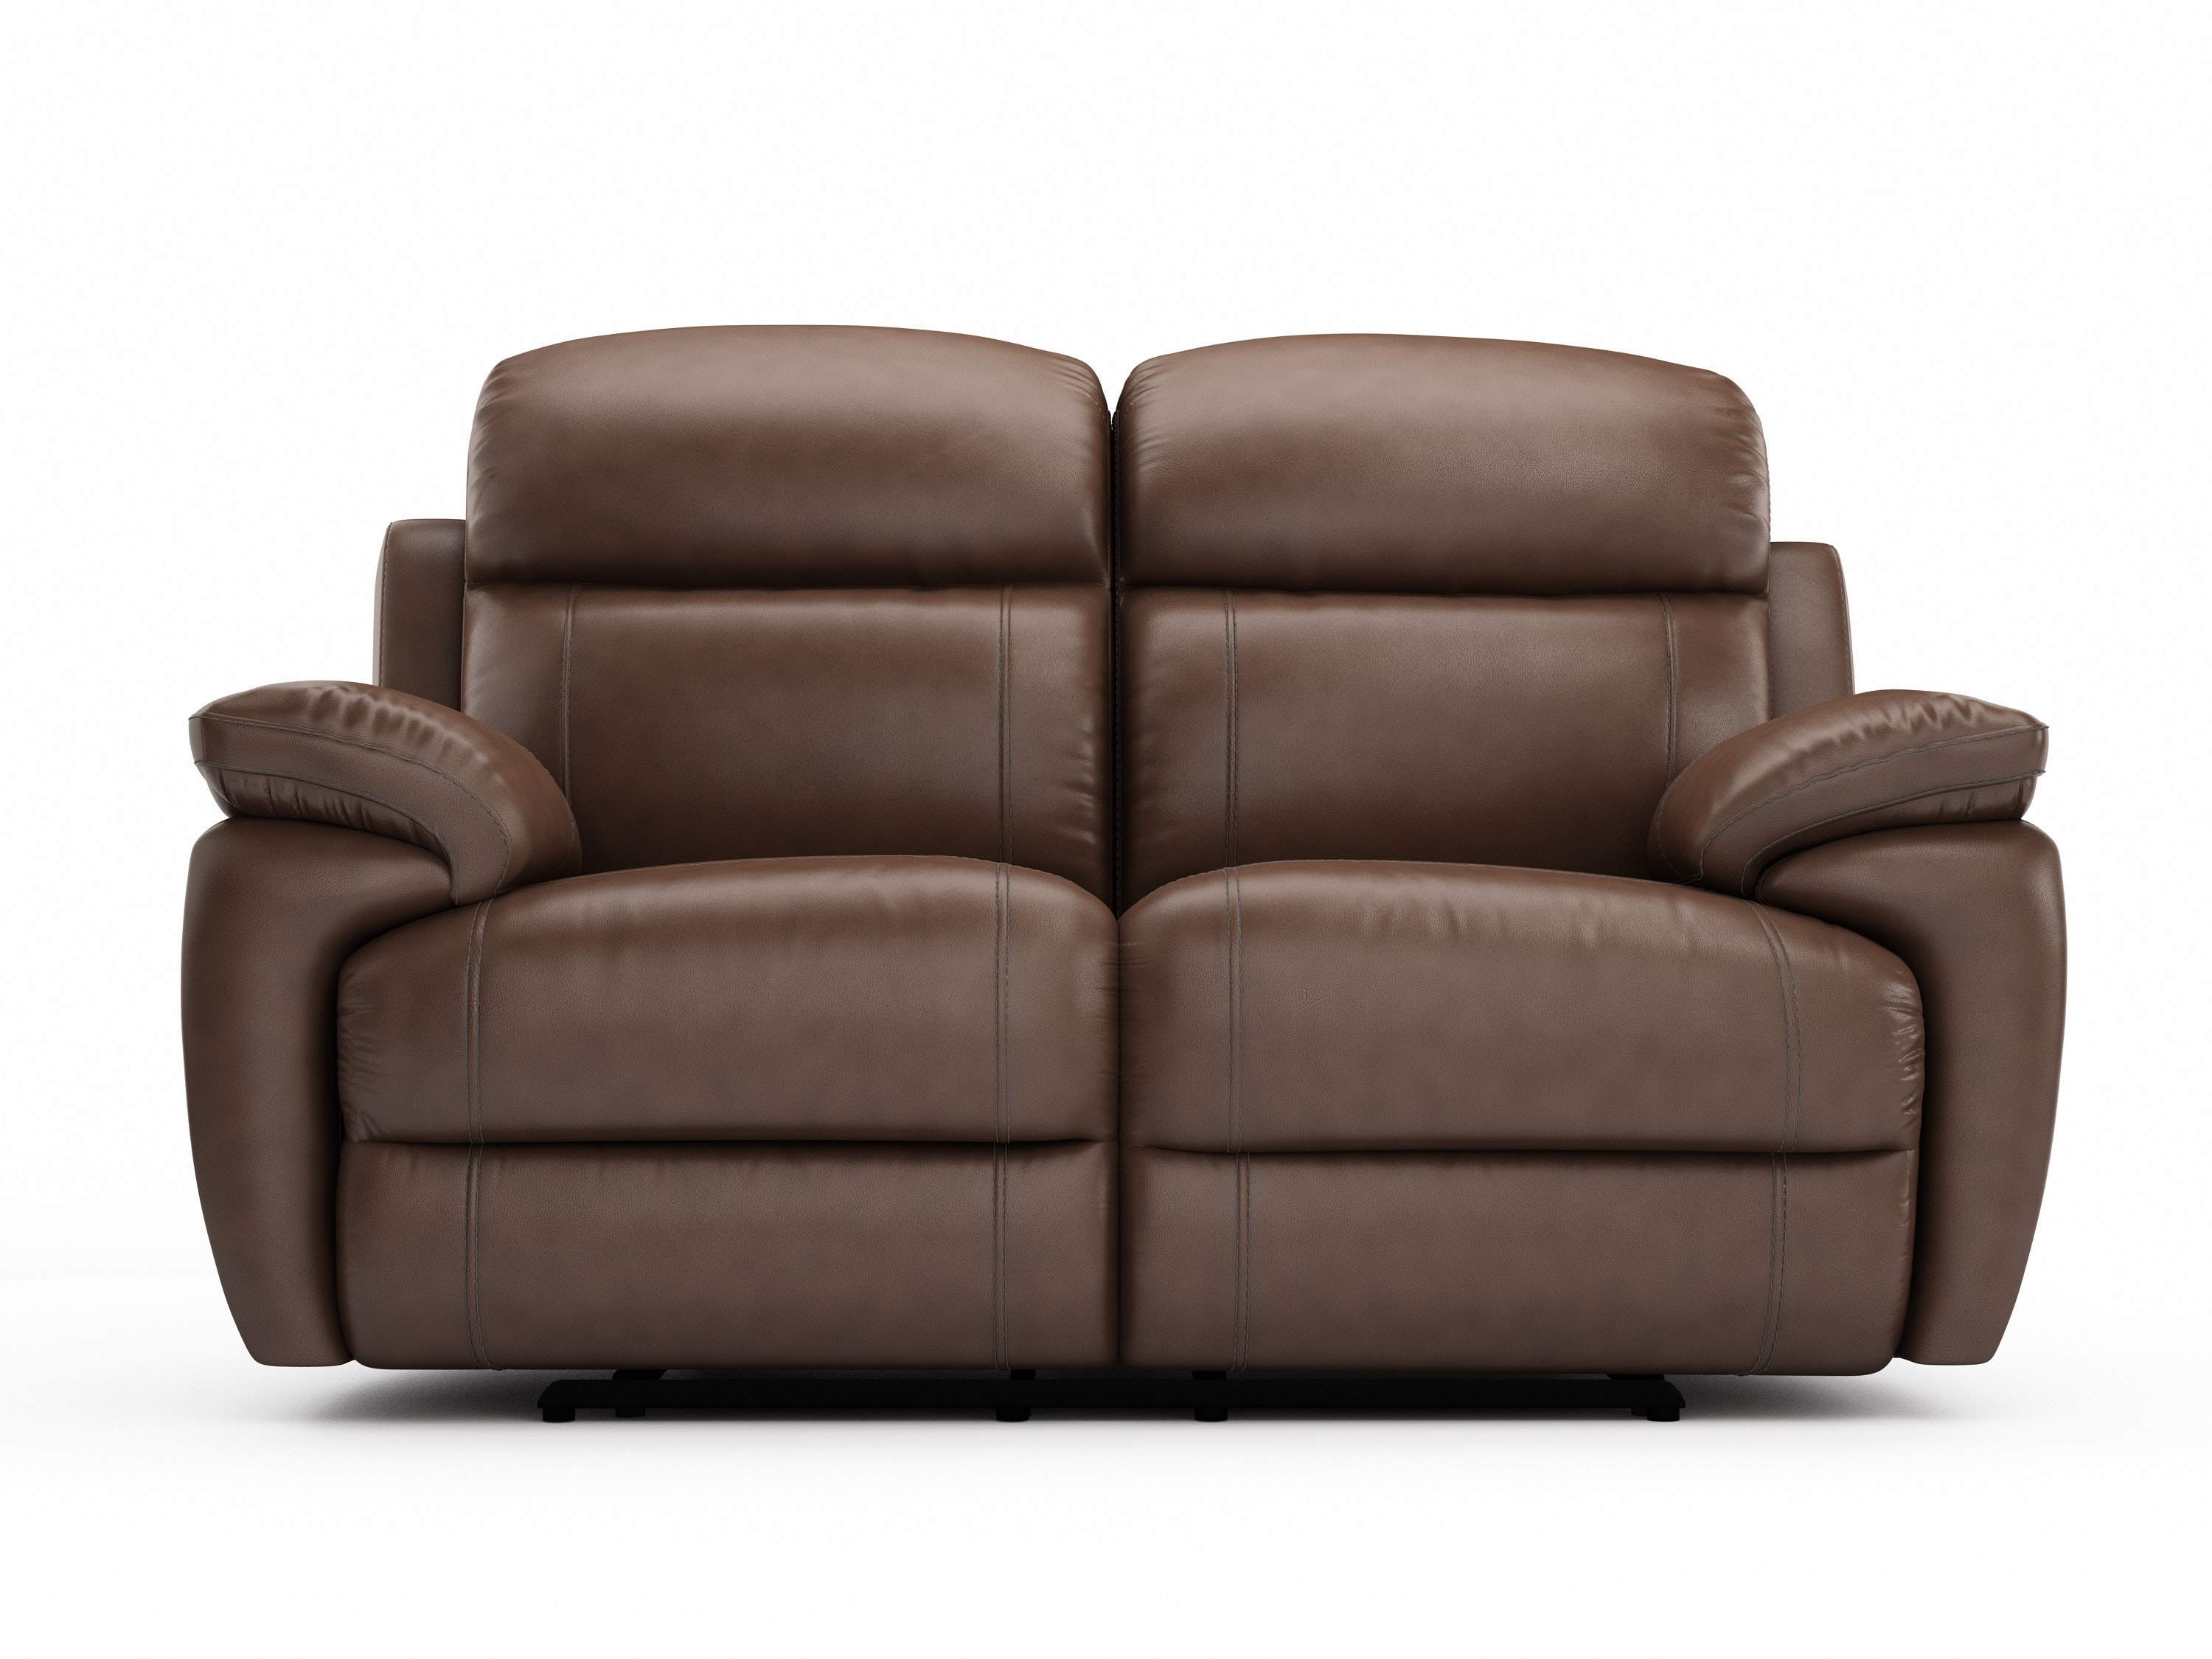 Maya 2 Seater Recliner | Manual